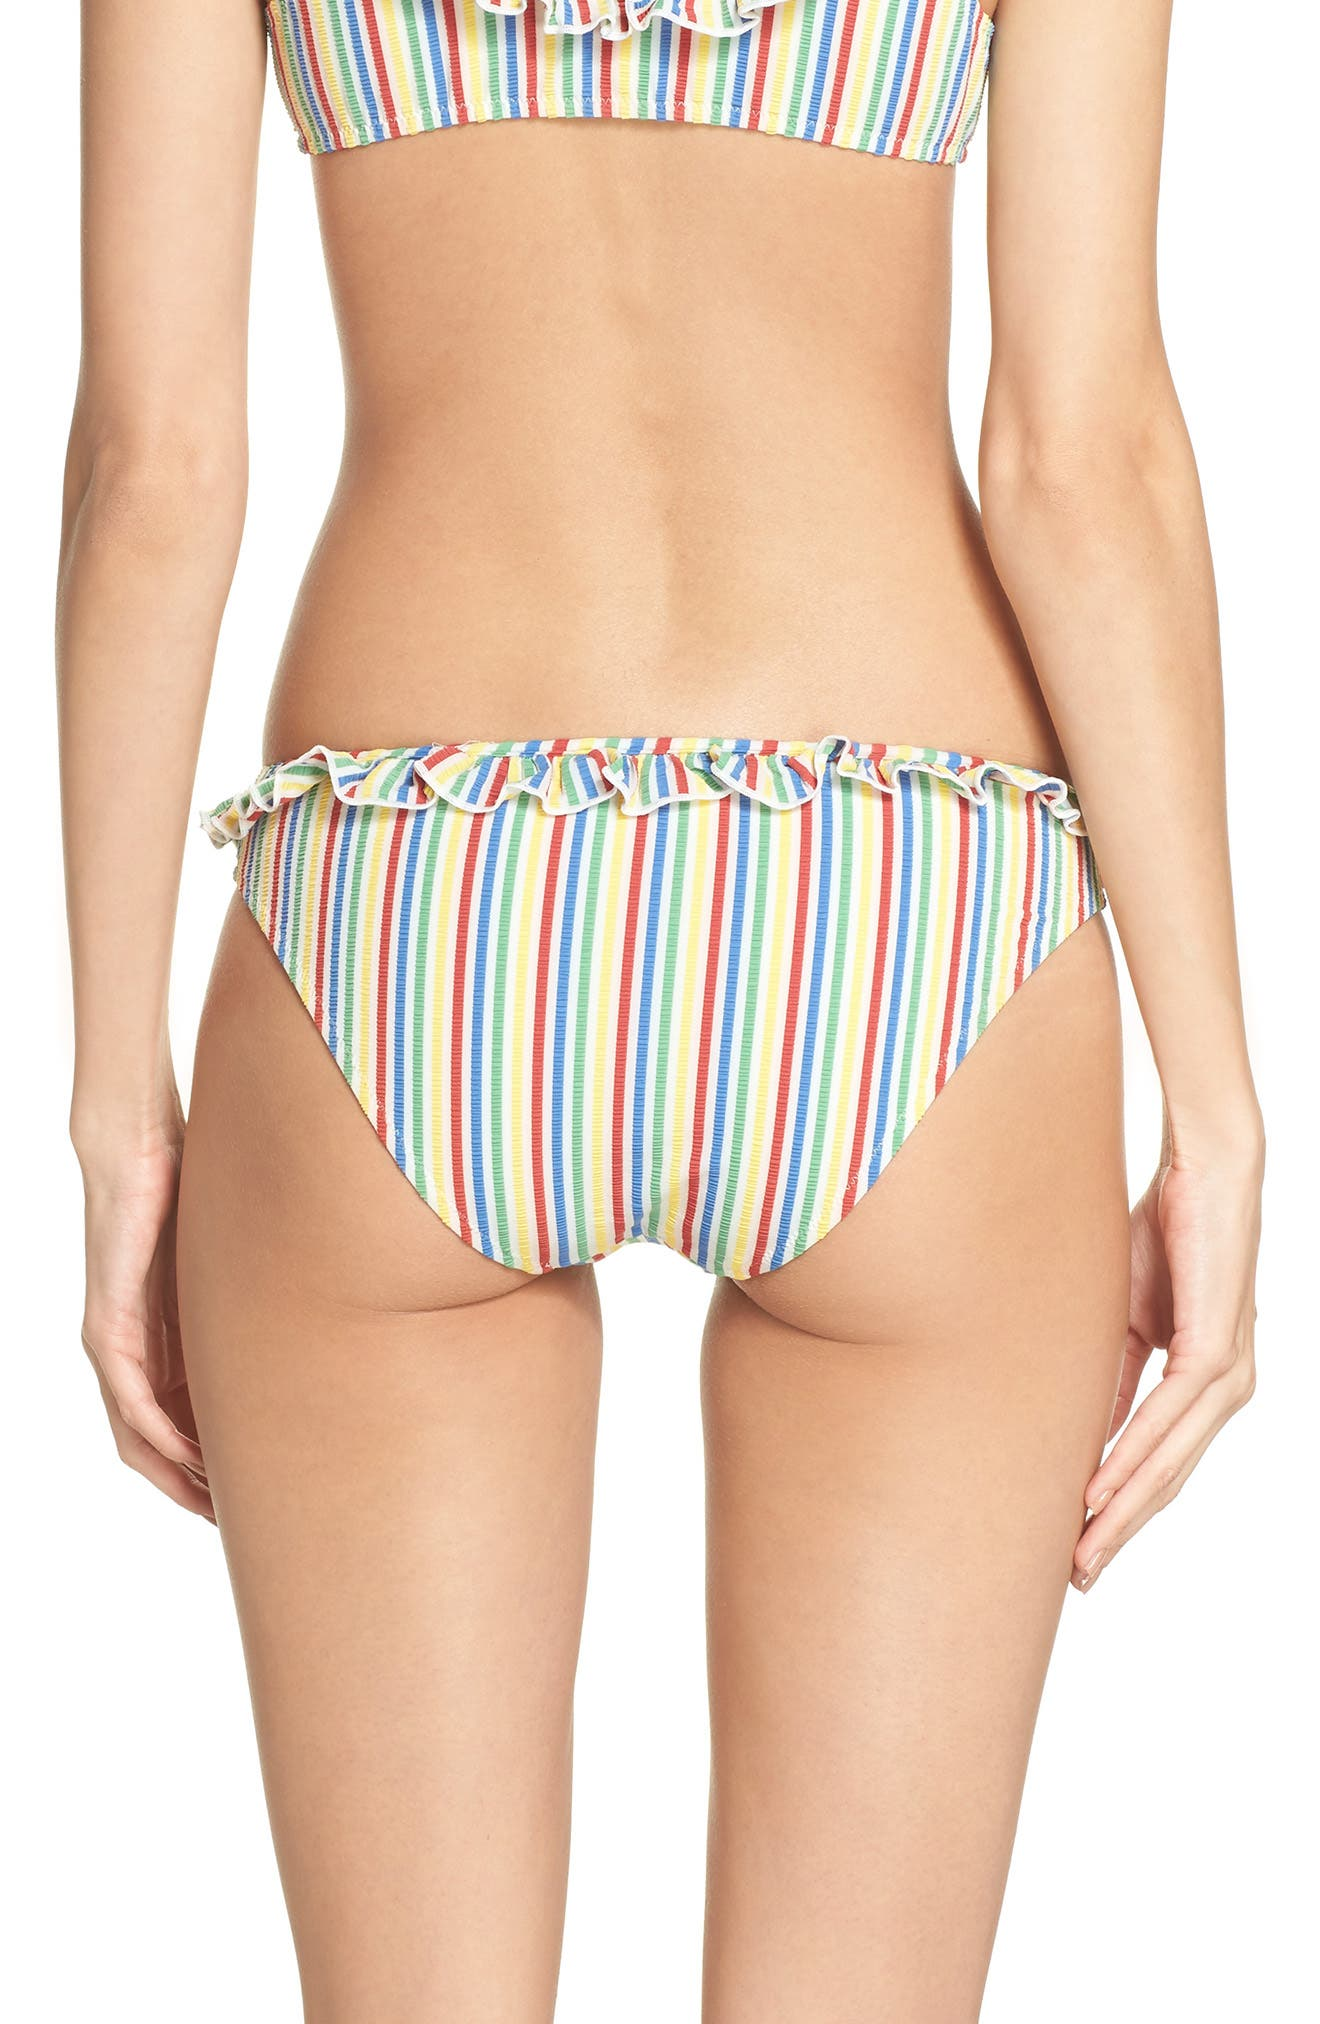 The Milly Bikini Bottoms,                             Alternate thumbnail 2, color,                             Yellow/ Blue/ Pink